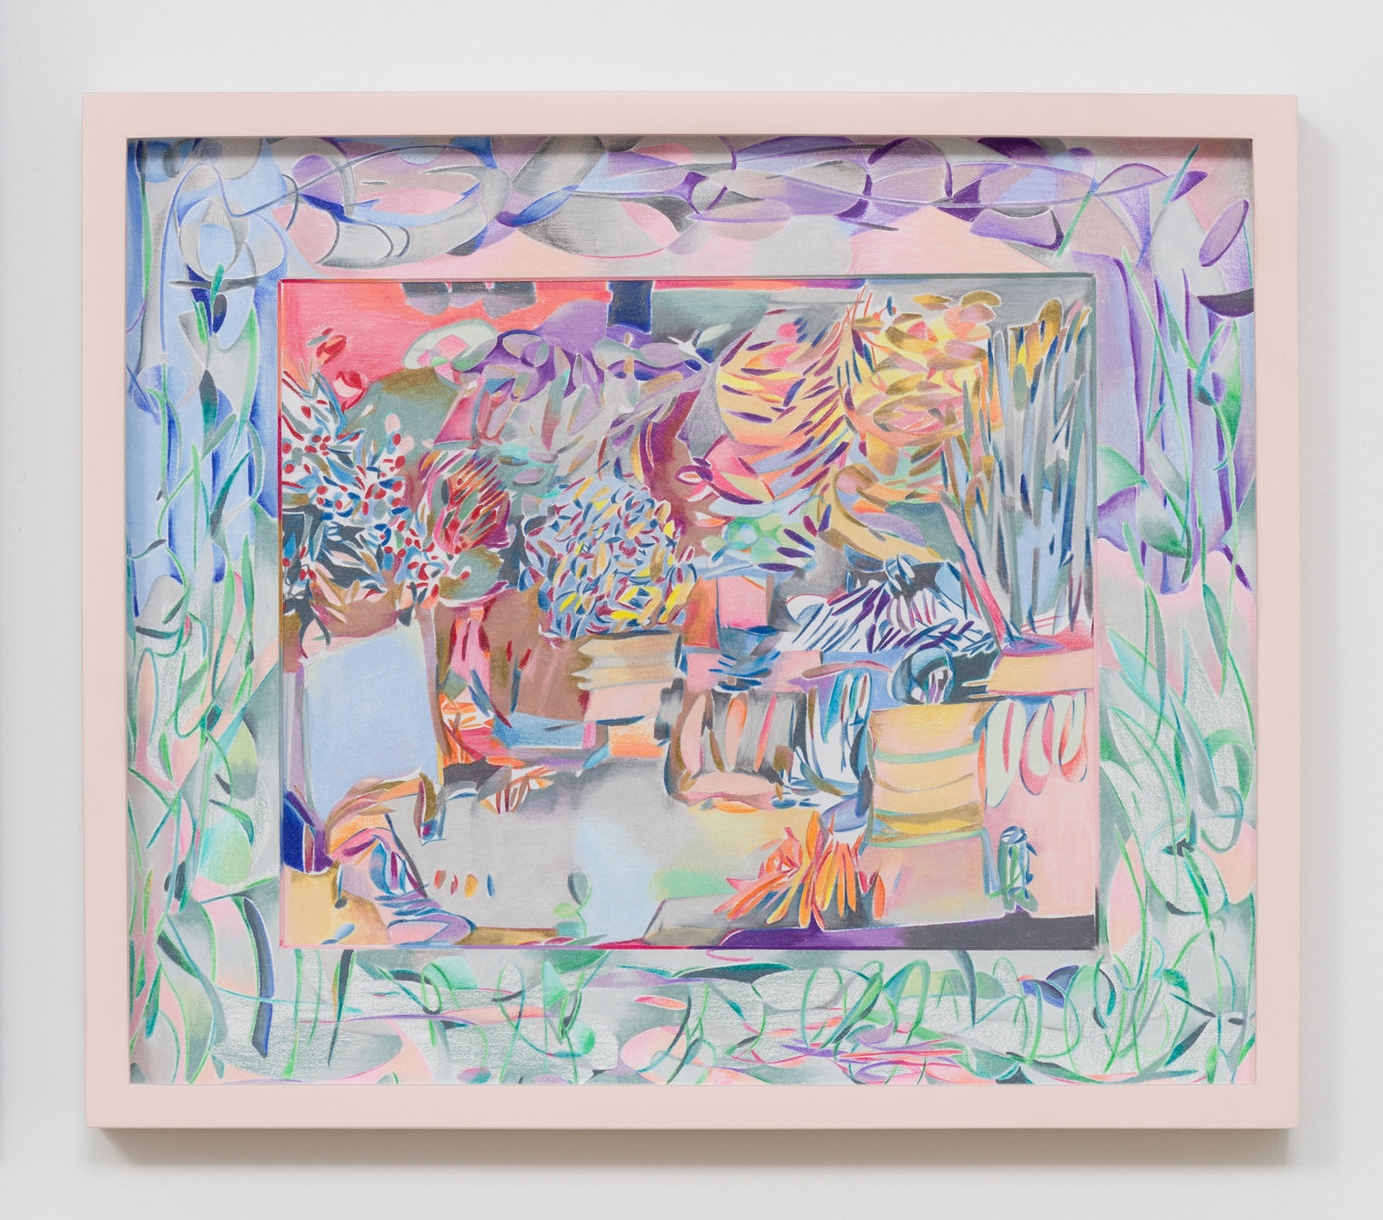 Sarah Ann Weber    Tuileries Garden   2016 Prismacolor colored pencils on paper and mat board, artist's frame 12 x 14 inches